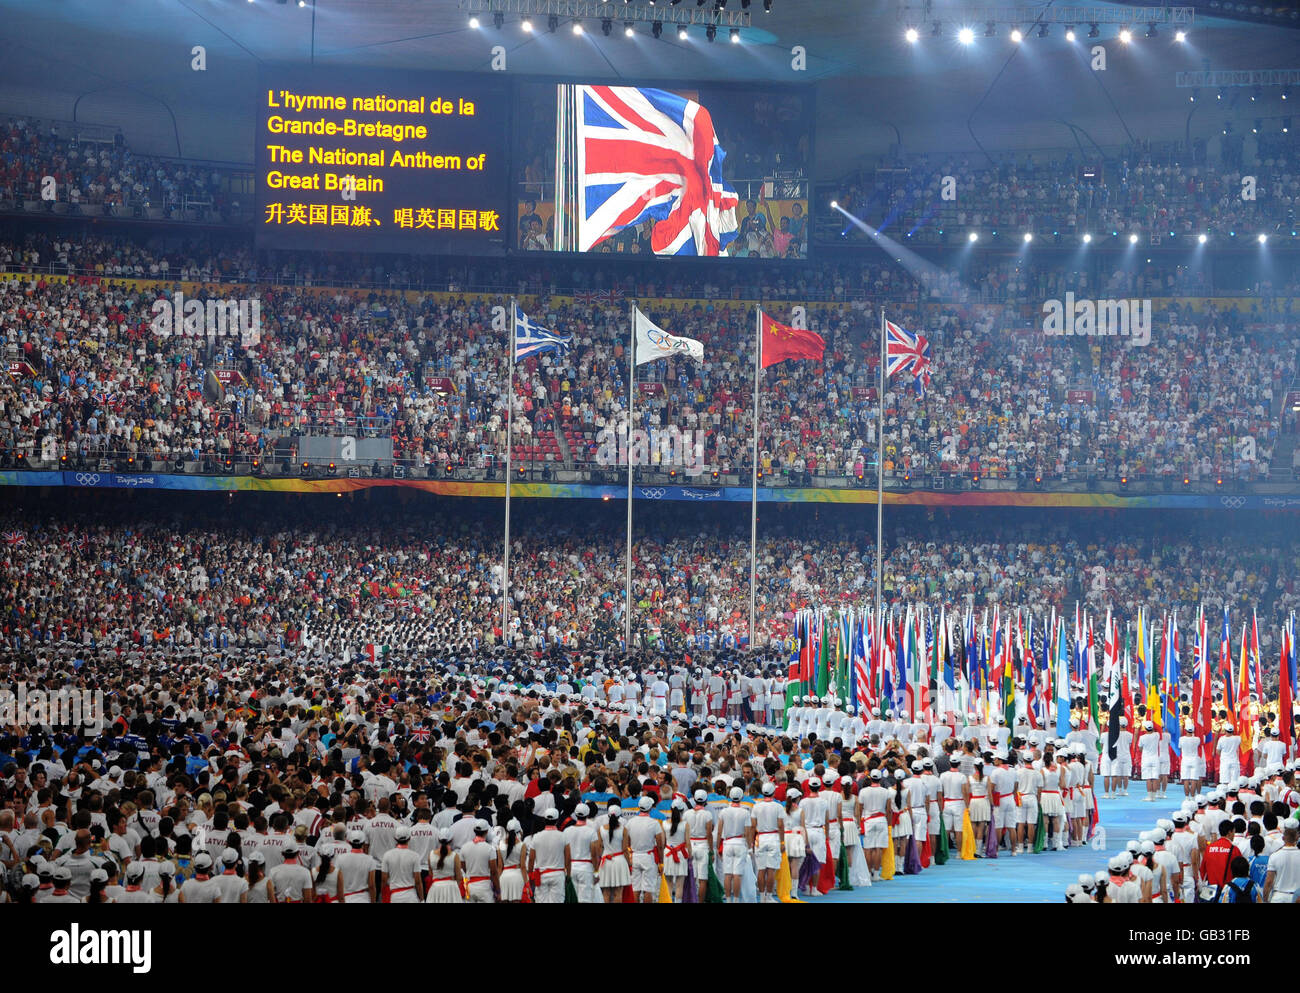 The spectators of the closing ceremony of the Olympics will show the Russian culture 23.02.2014 30